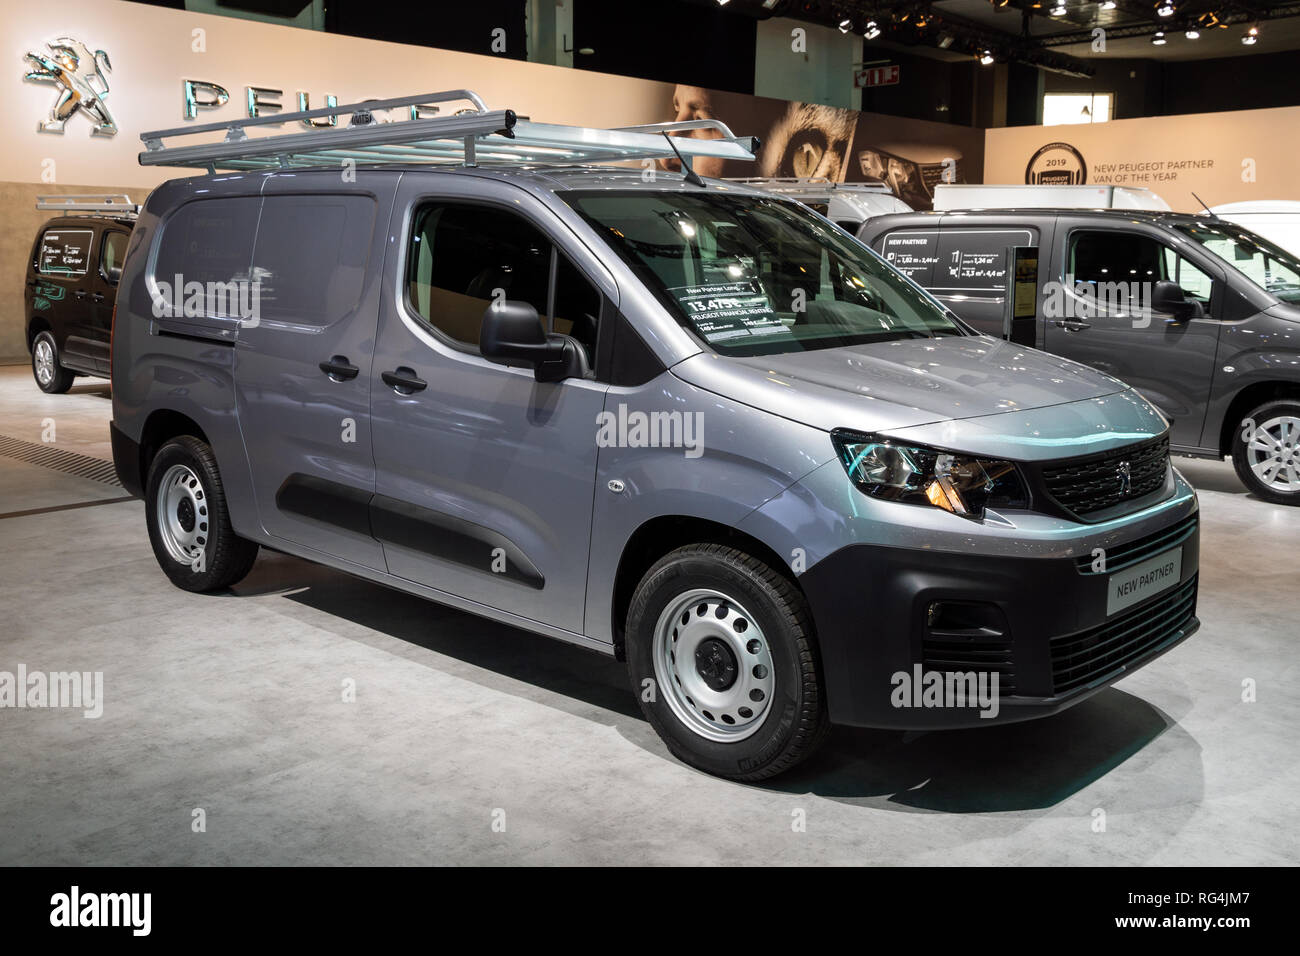 Brussels Jan 18 2019 Peugeot Partner Commercial Vehicle Showcased At The 97th Brussels Motor Show 2019 Autosalon Stock Photo Alamy